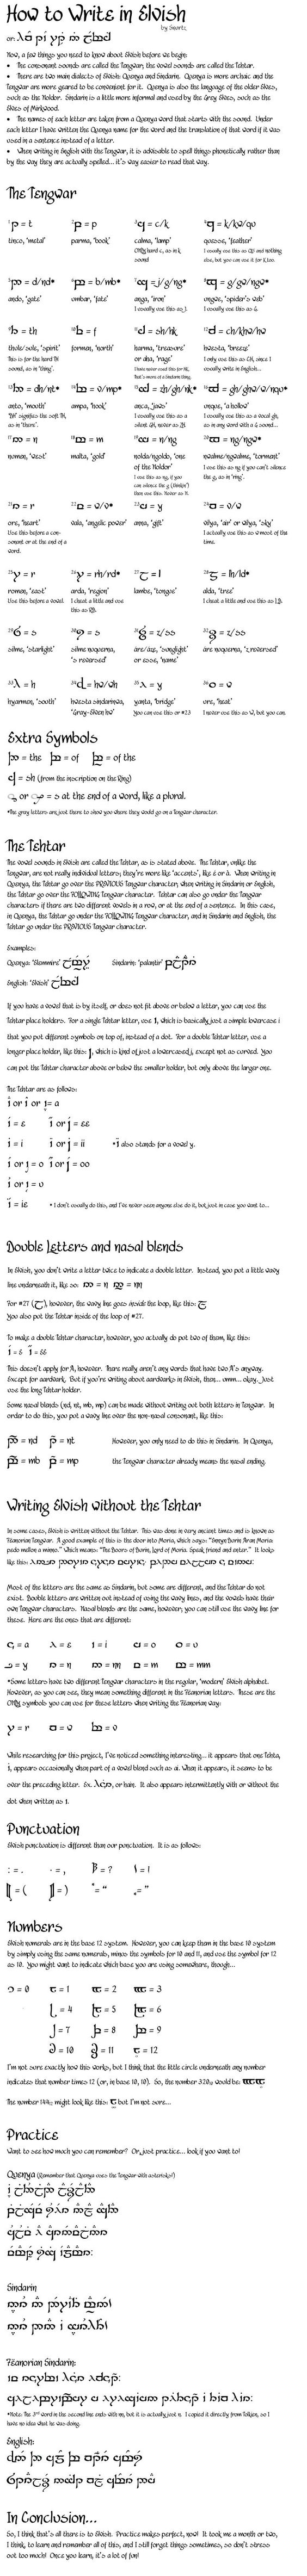 TUTORIAL: How to write in Elvish!  This makes me feel really REALLY happy.